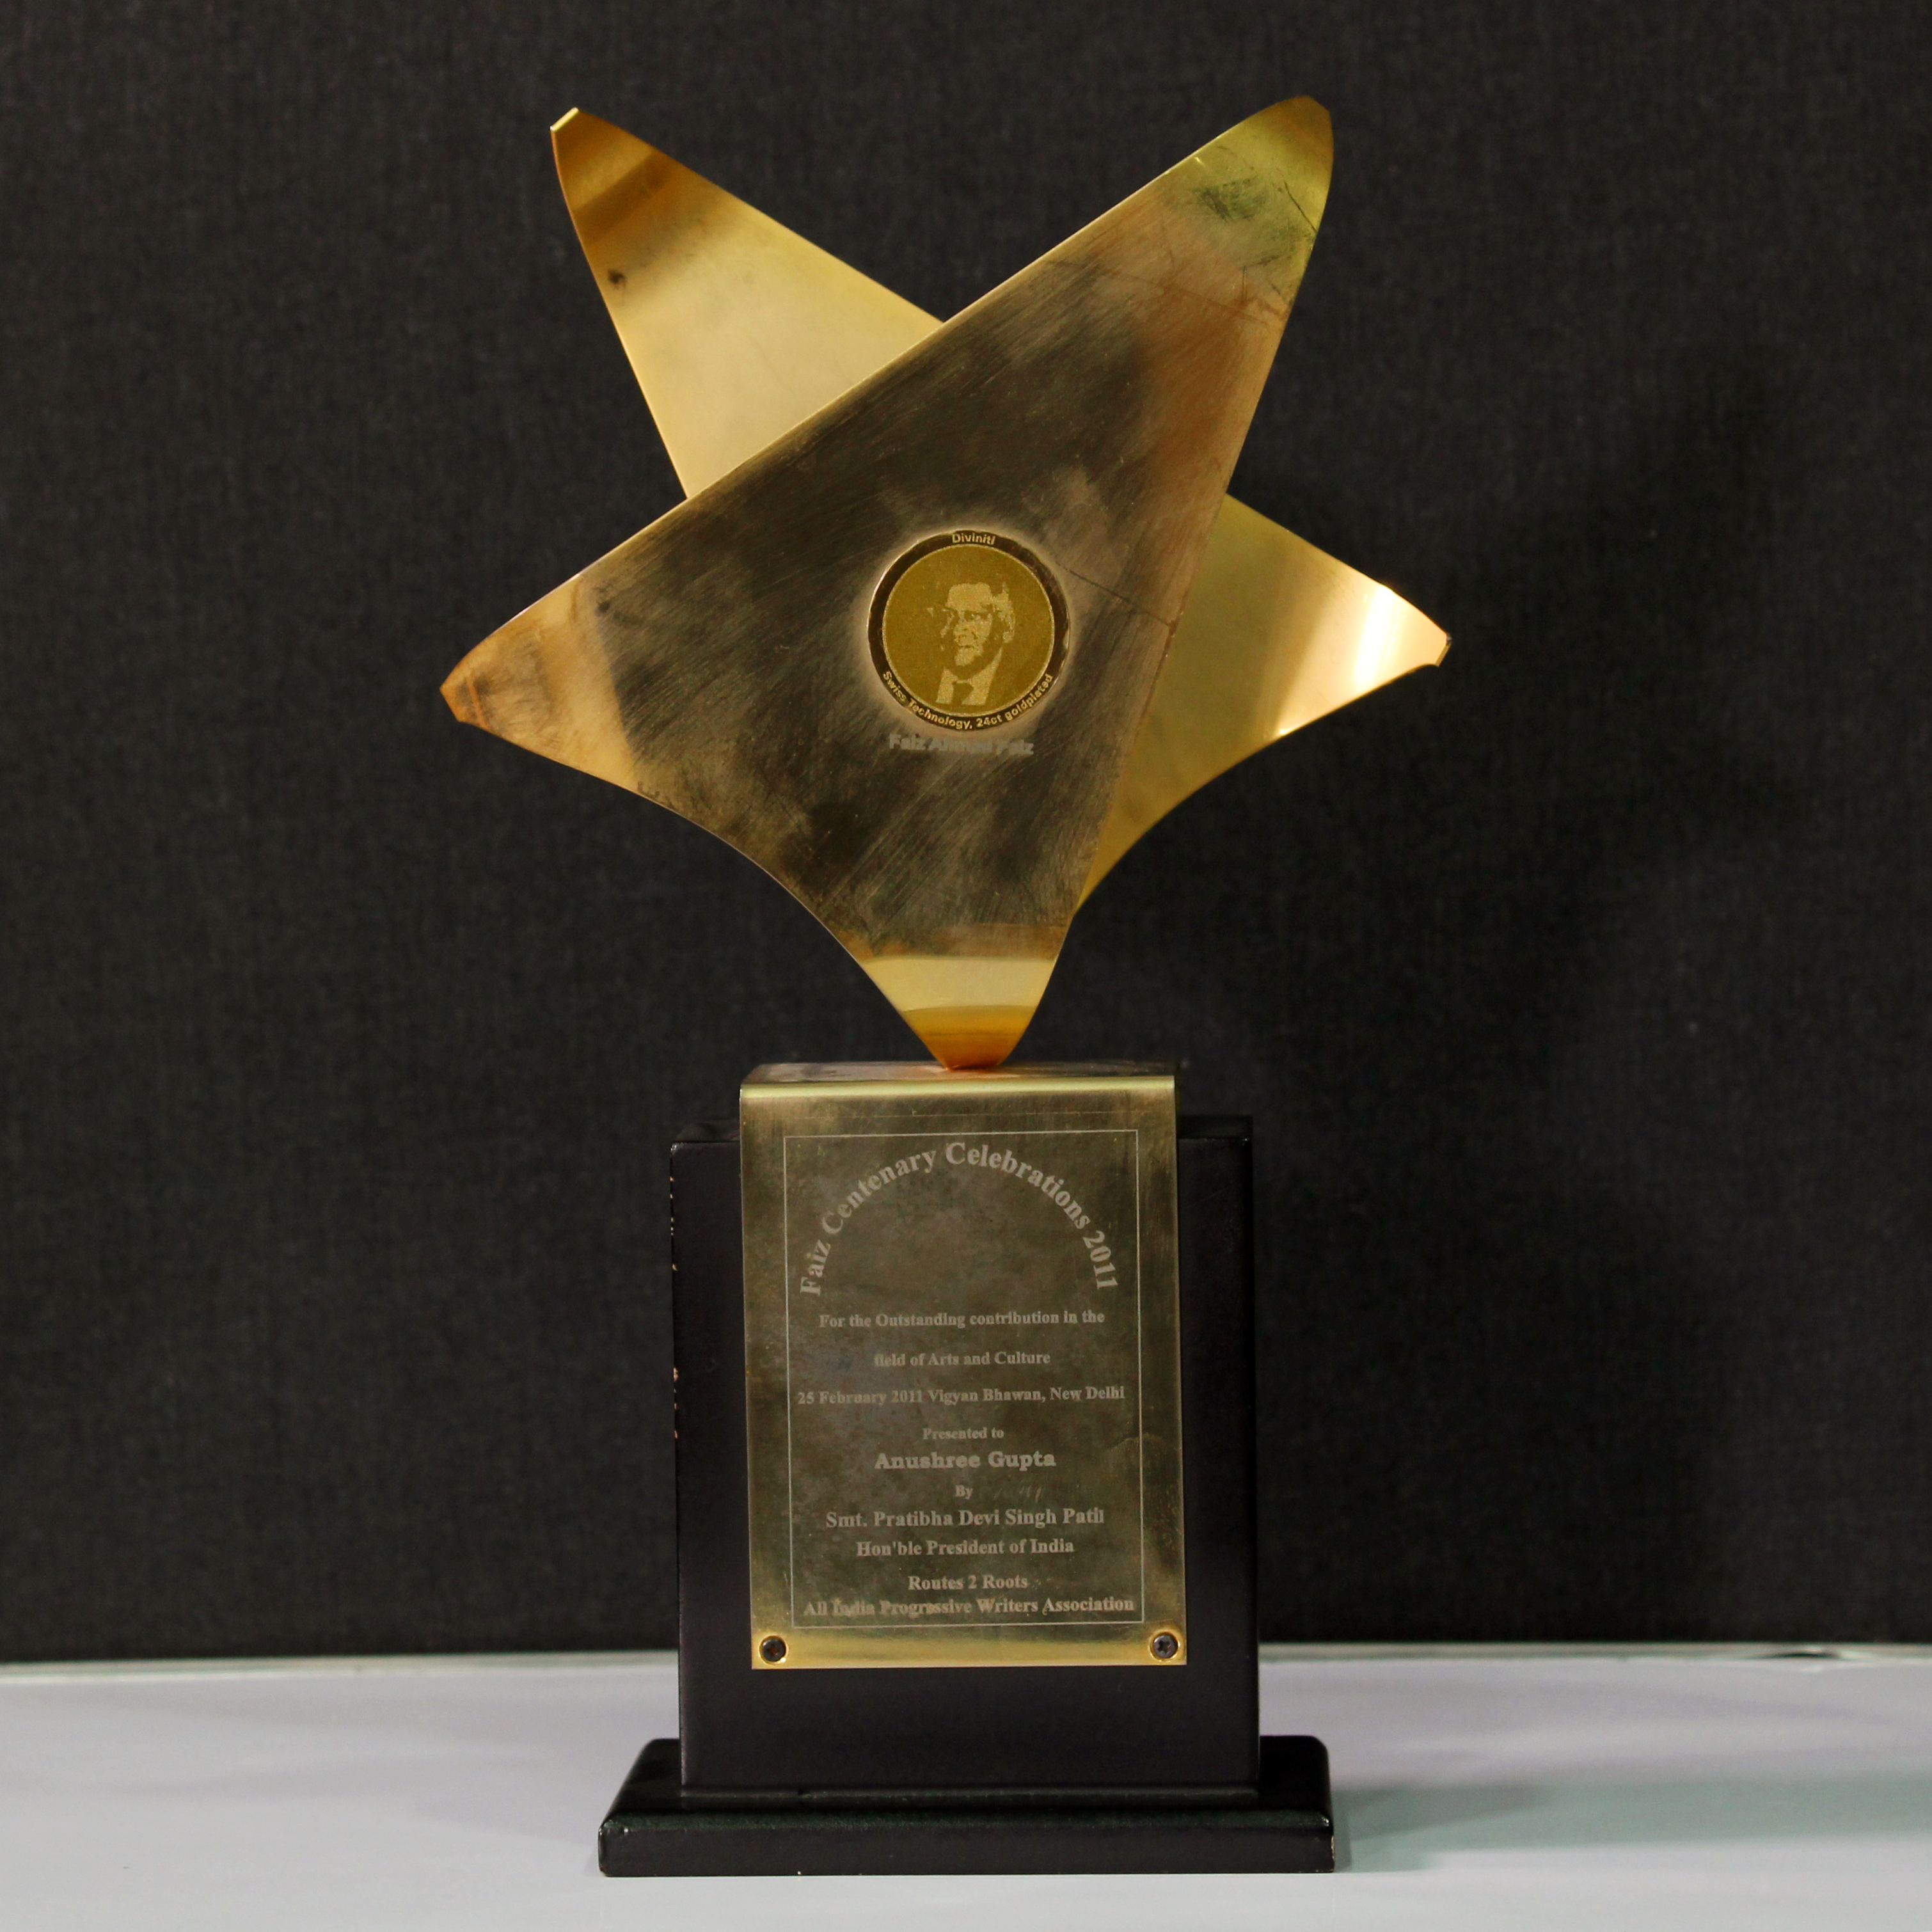 Outstanding Contribution Award in the Field of Art & Culture